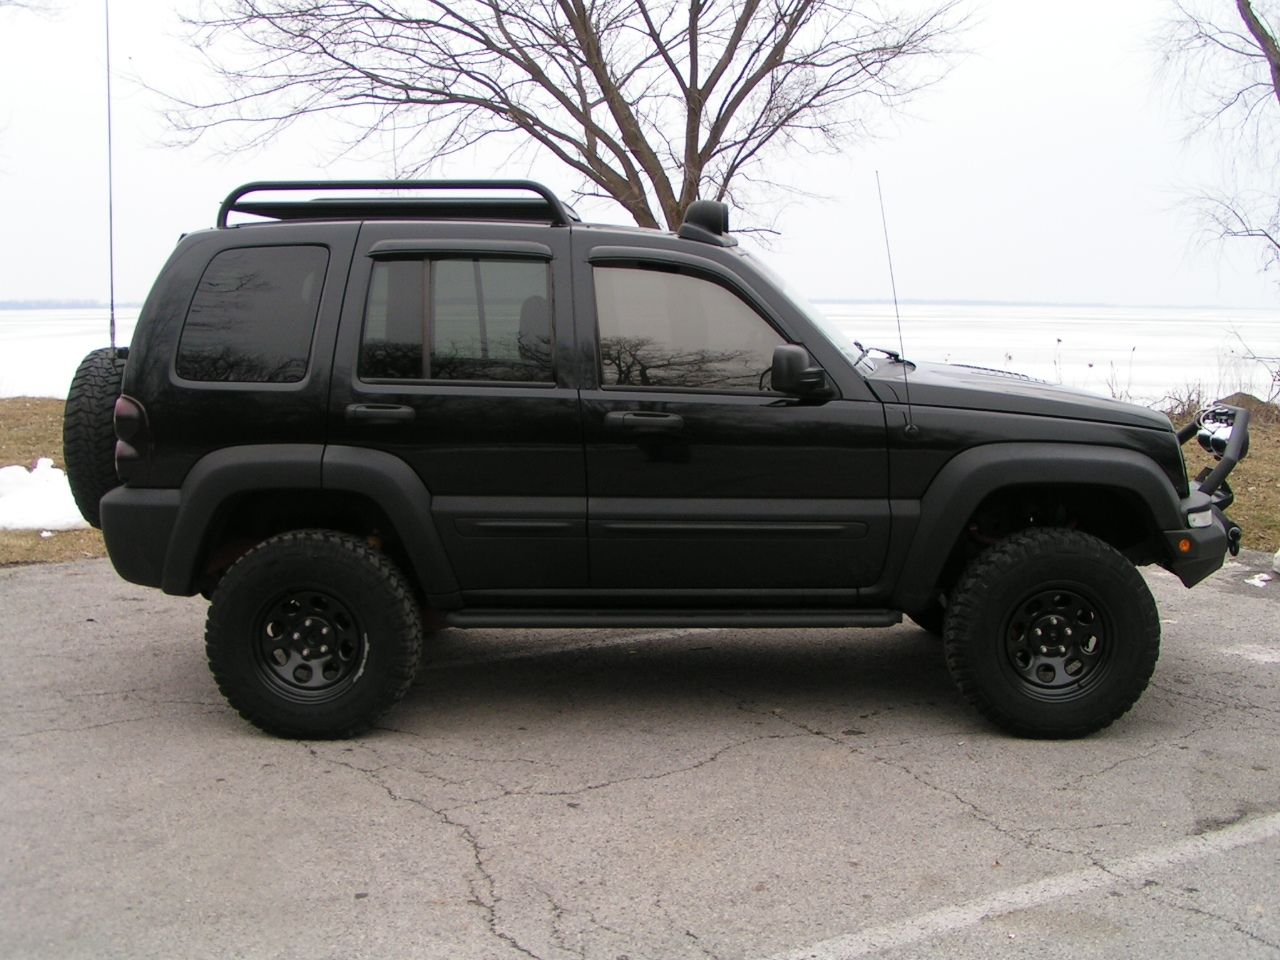 View Another 03CDKJ 2003 Jeep Liberty post... Photo